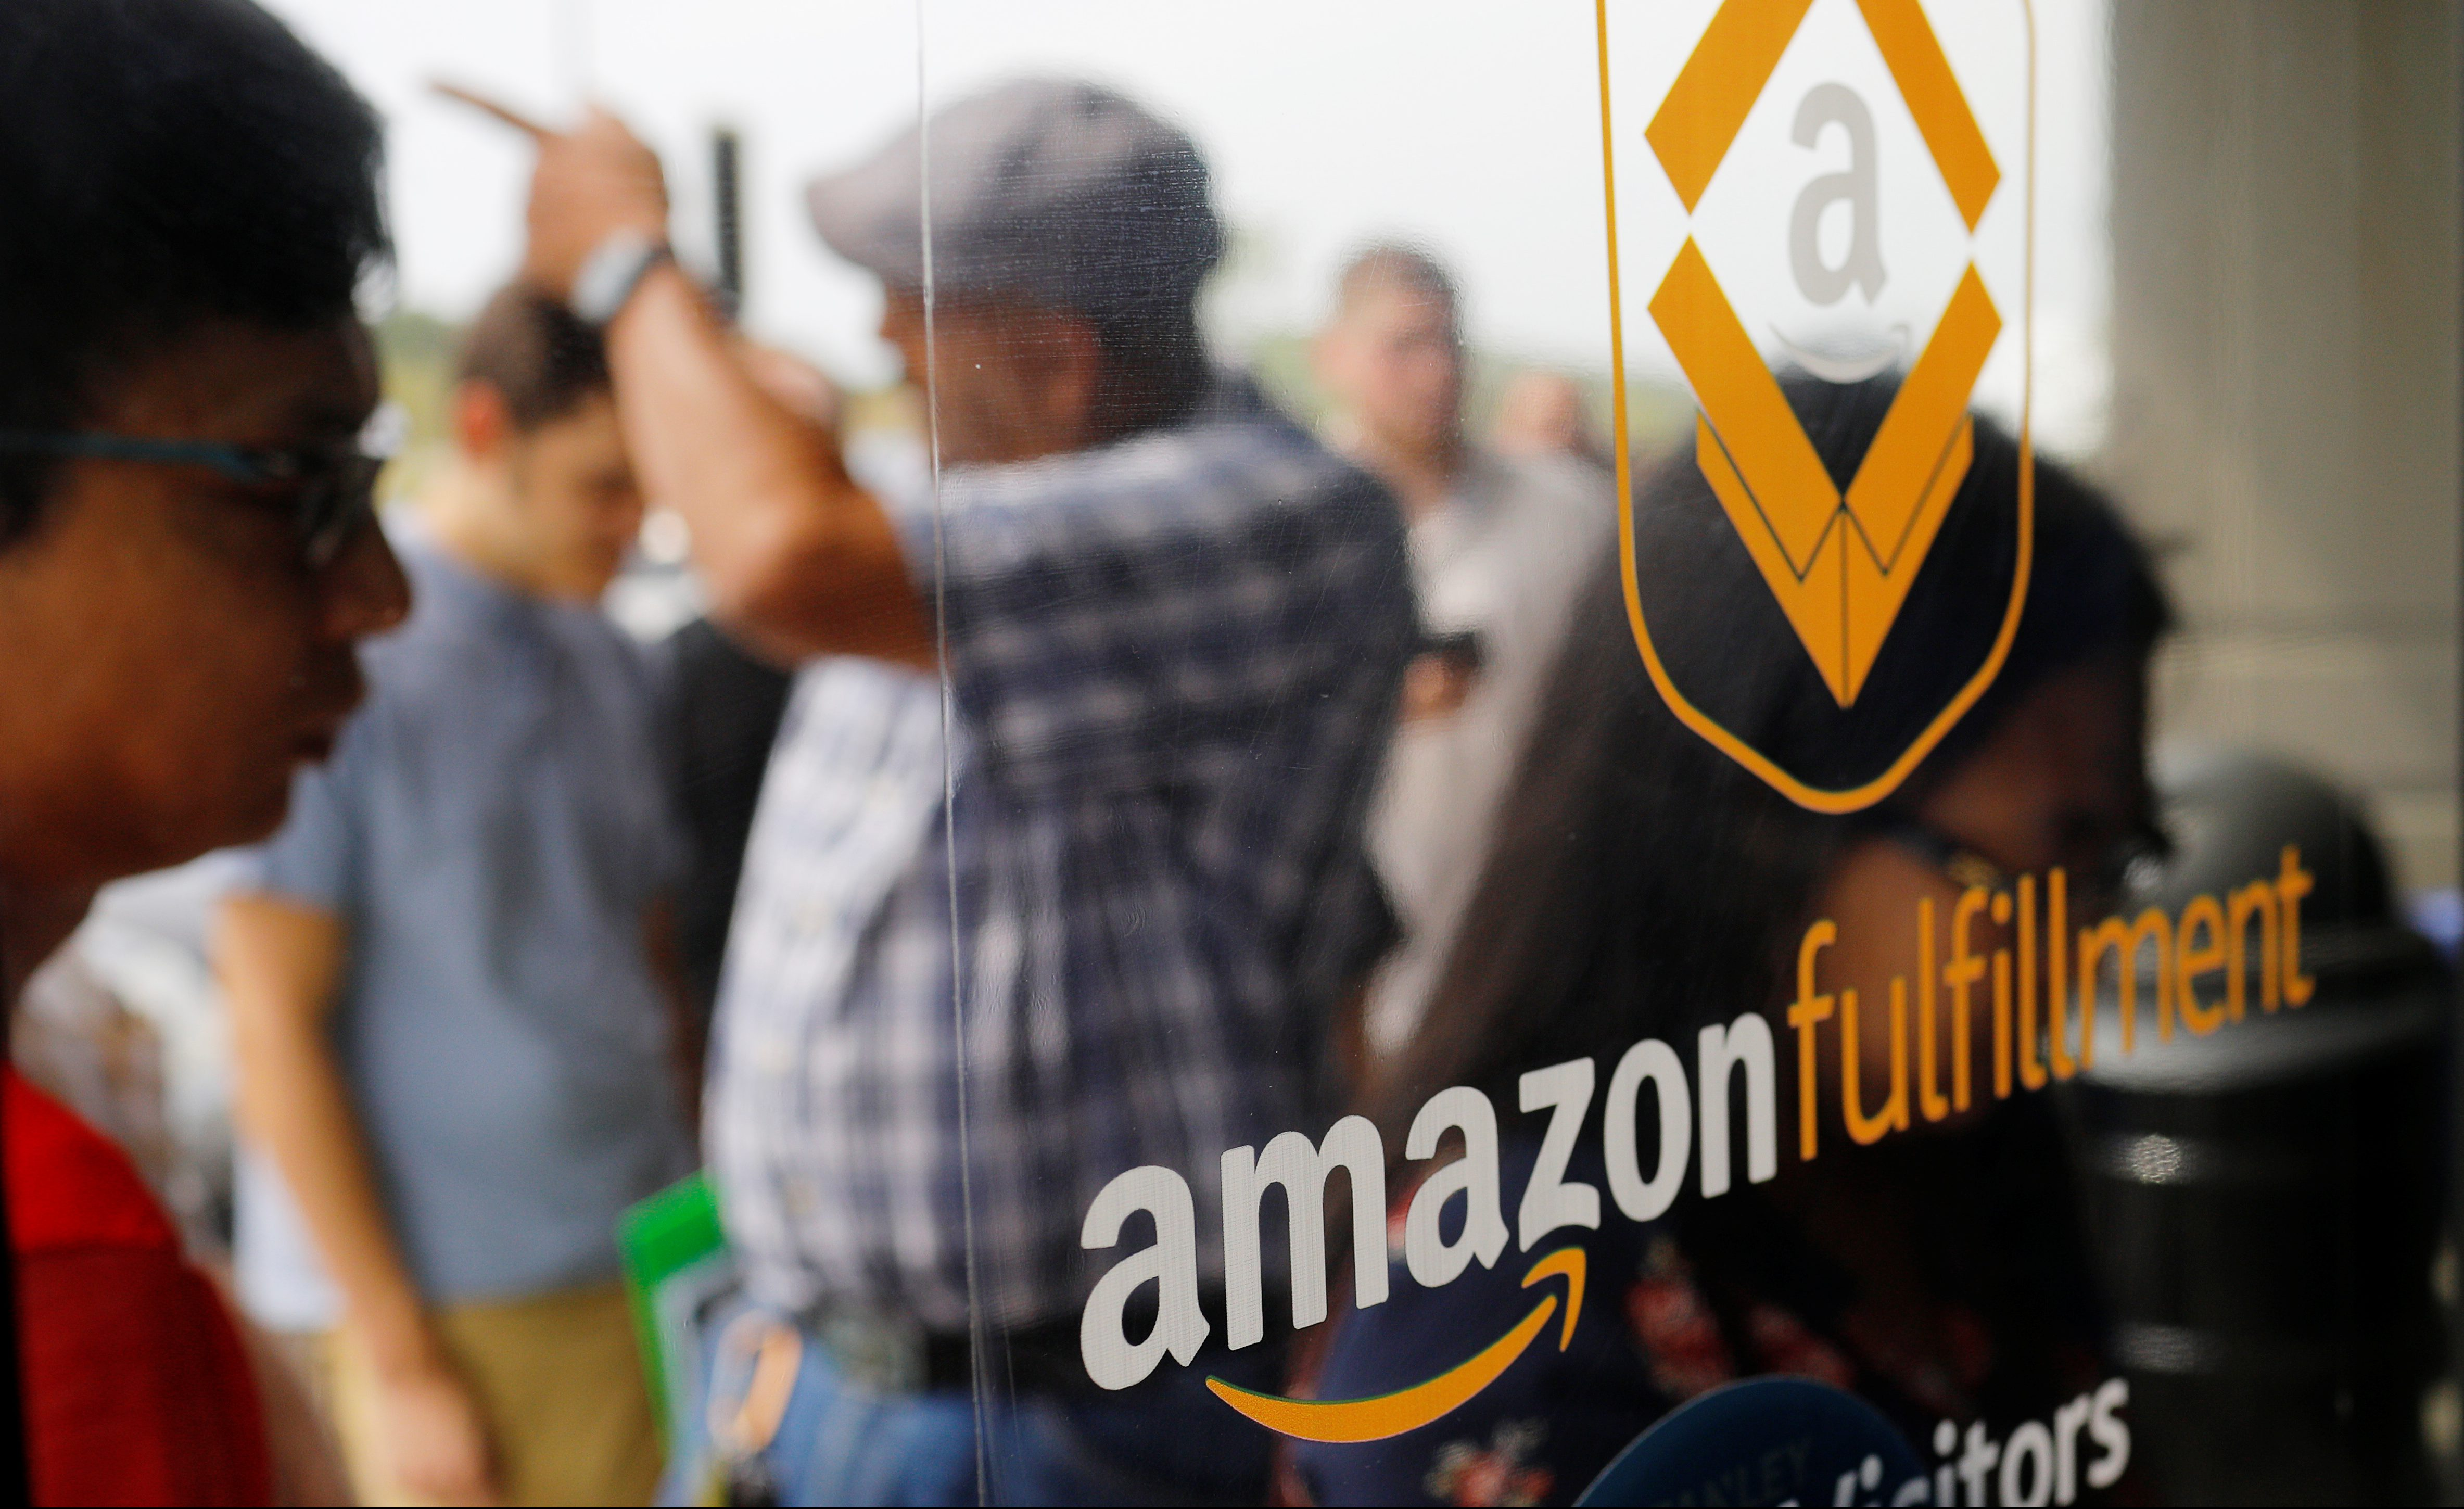 """Job seekers line up to apply during """"Amazon Jobs Day,"""" a job fair being held at 10 fulfillment centers across the United States aimed at filling more than 50,000 jobs, at the Amazon.com Fulfillment Center in Fall River, Massachusetts, U.S., August 2, 2017.   REUTERS/Brian Snyder - RC1AB22F98F0"""